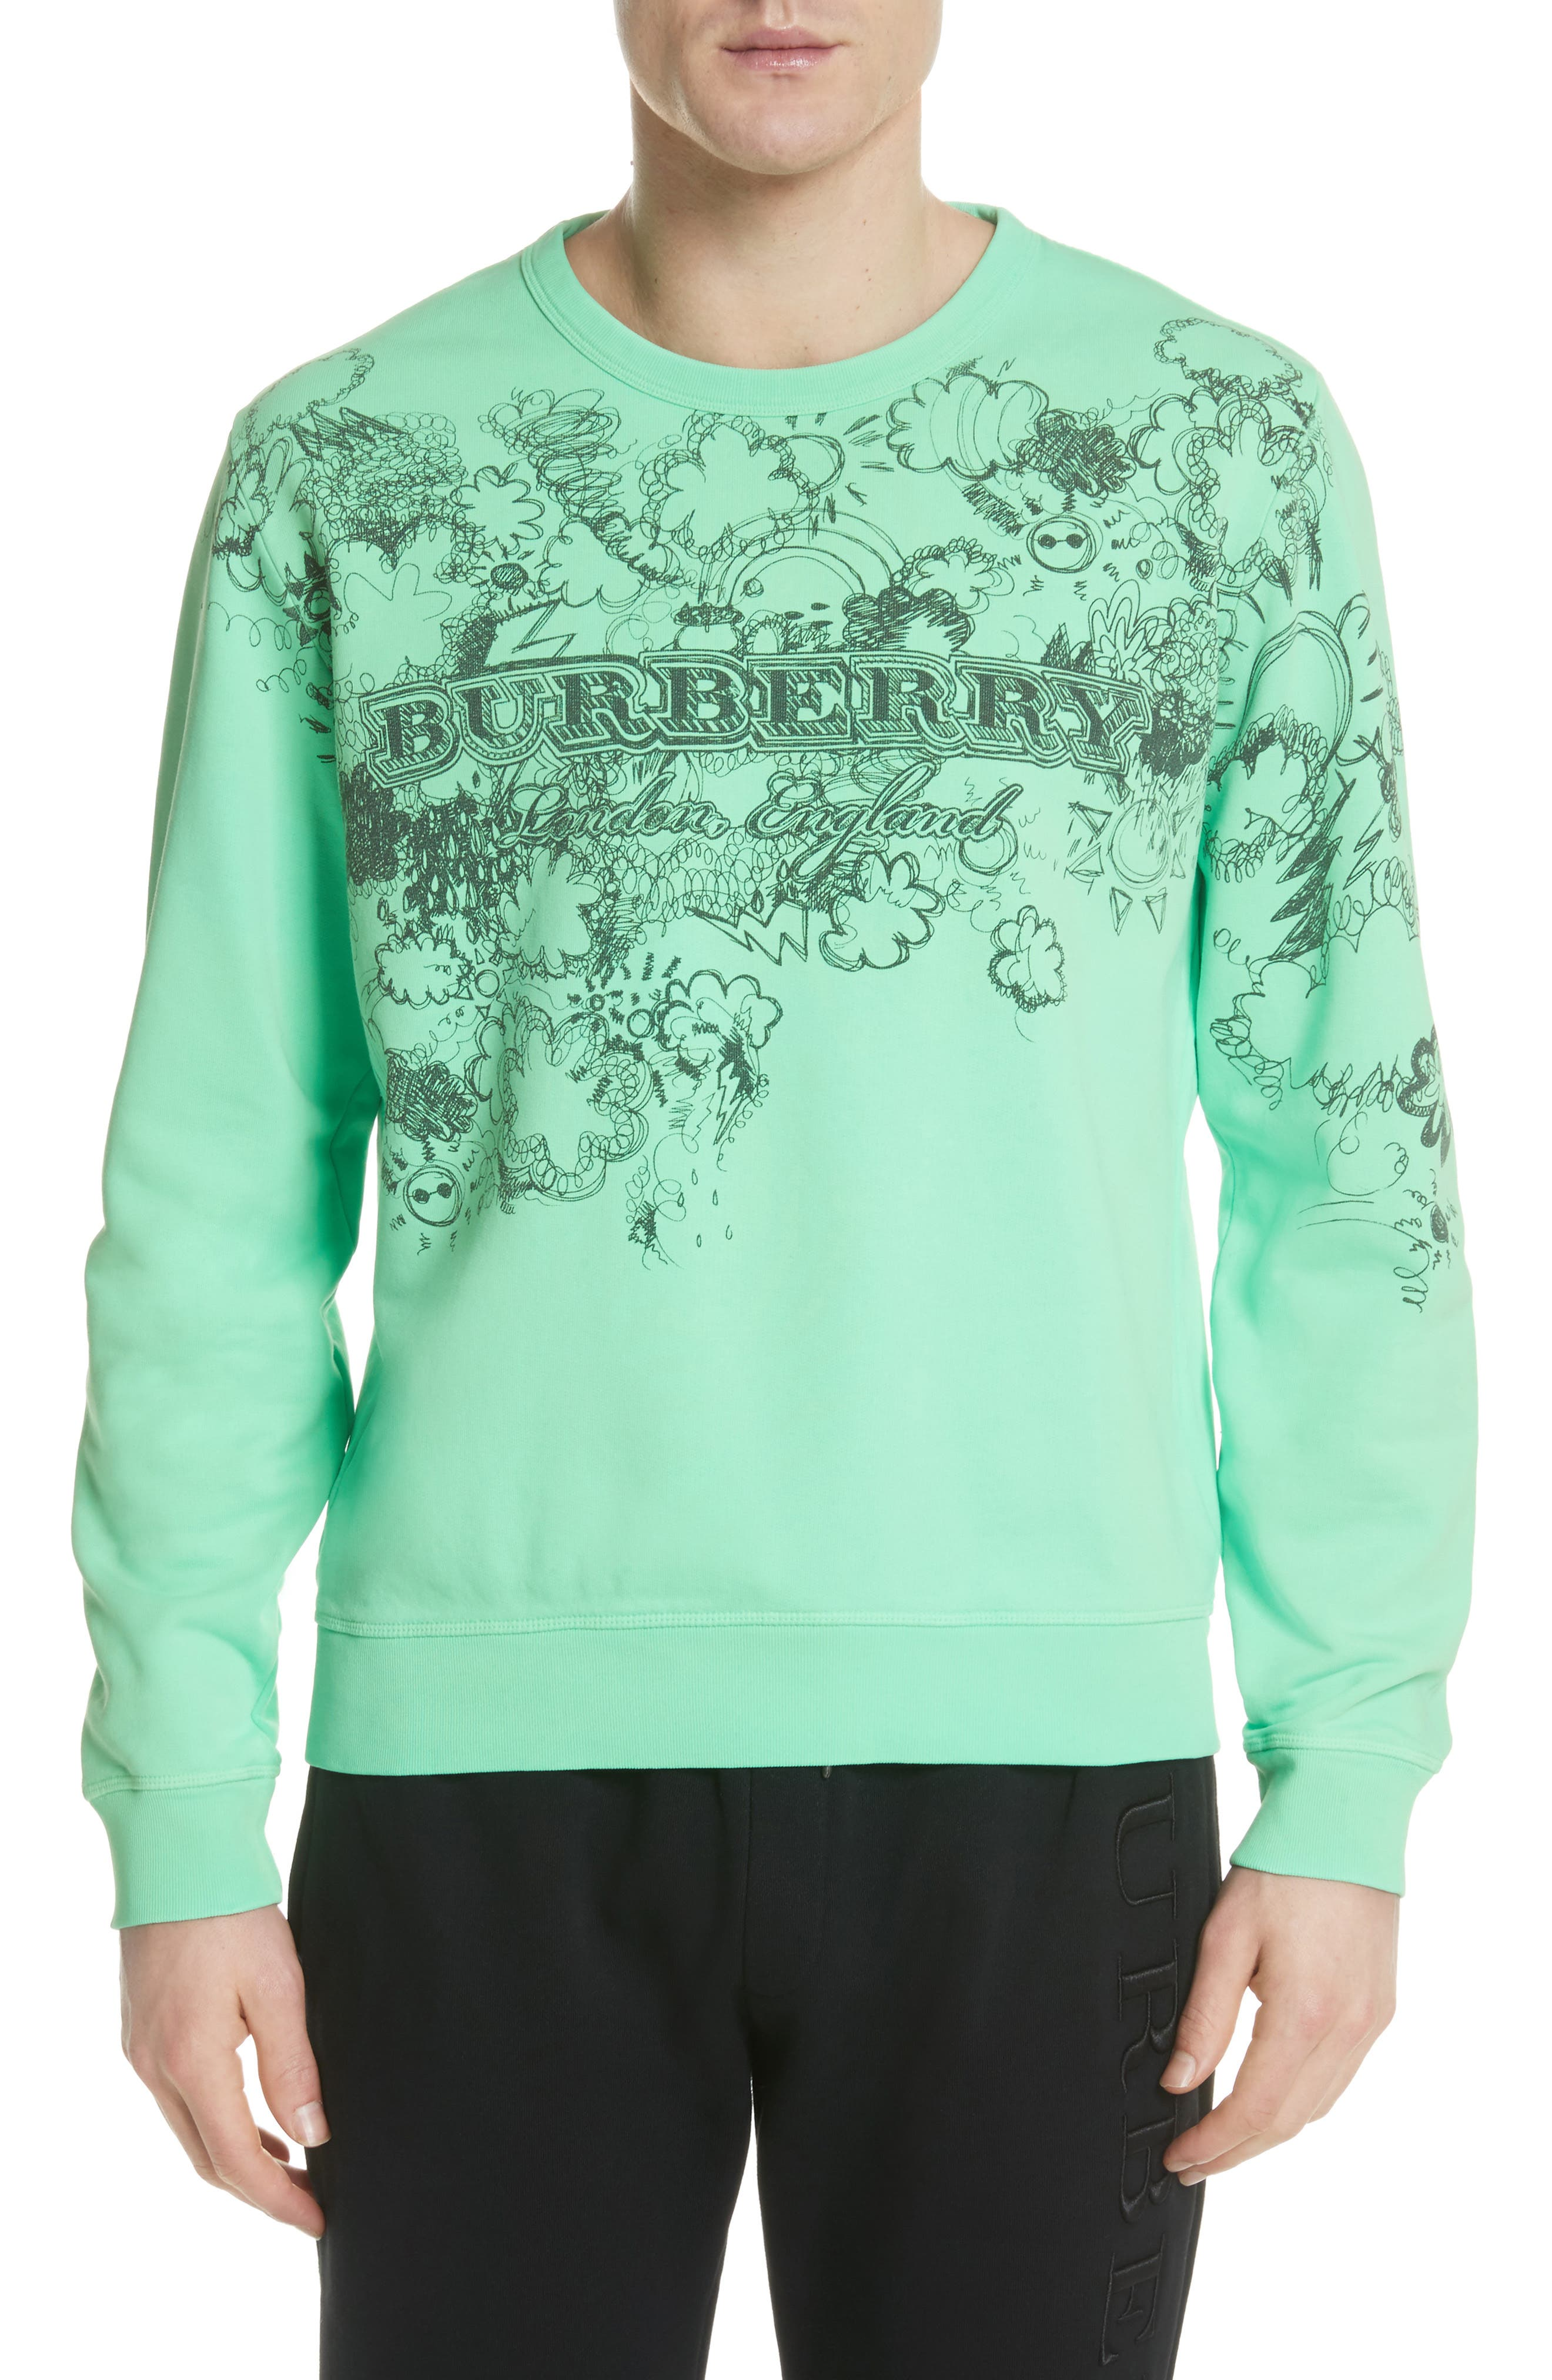 Main Image - Burberry Madon Graphic Sweatshirt